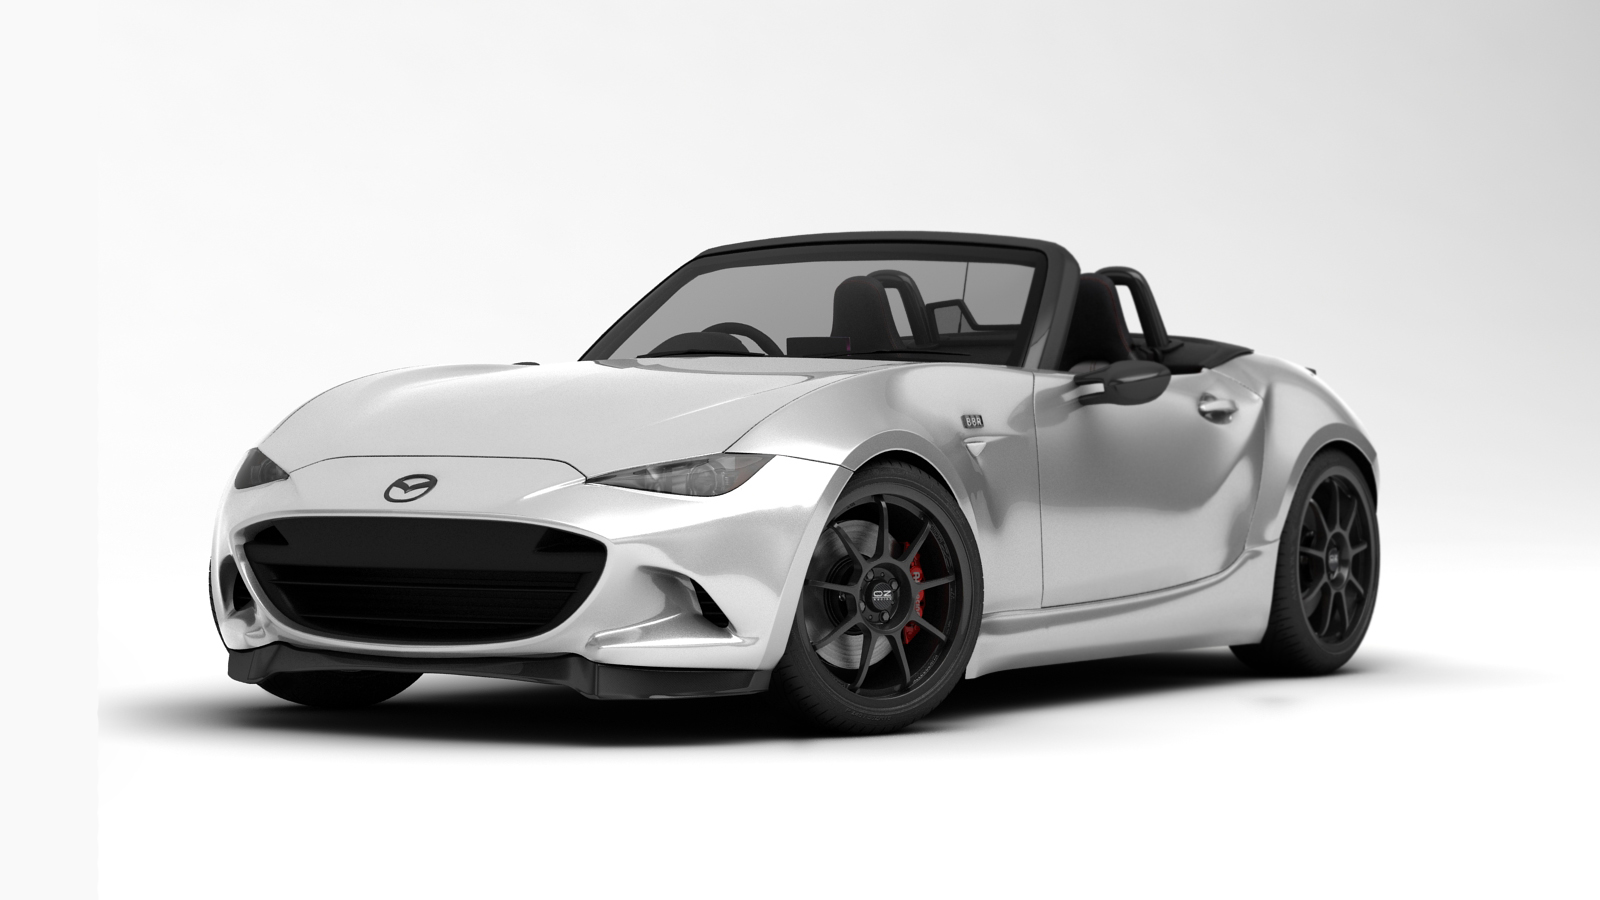 2015 mx5 wheels high performance mazda mx5 rims online. Black Bedroom Furniture Sets. Home Design Ideas